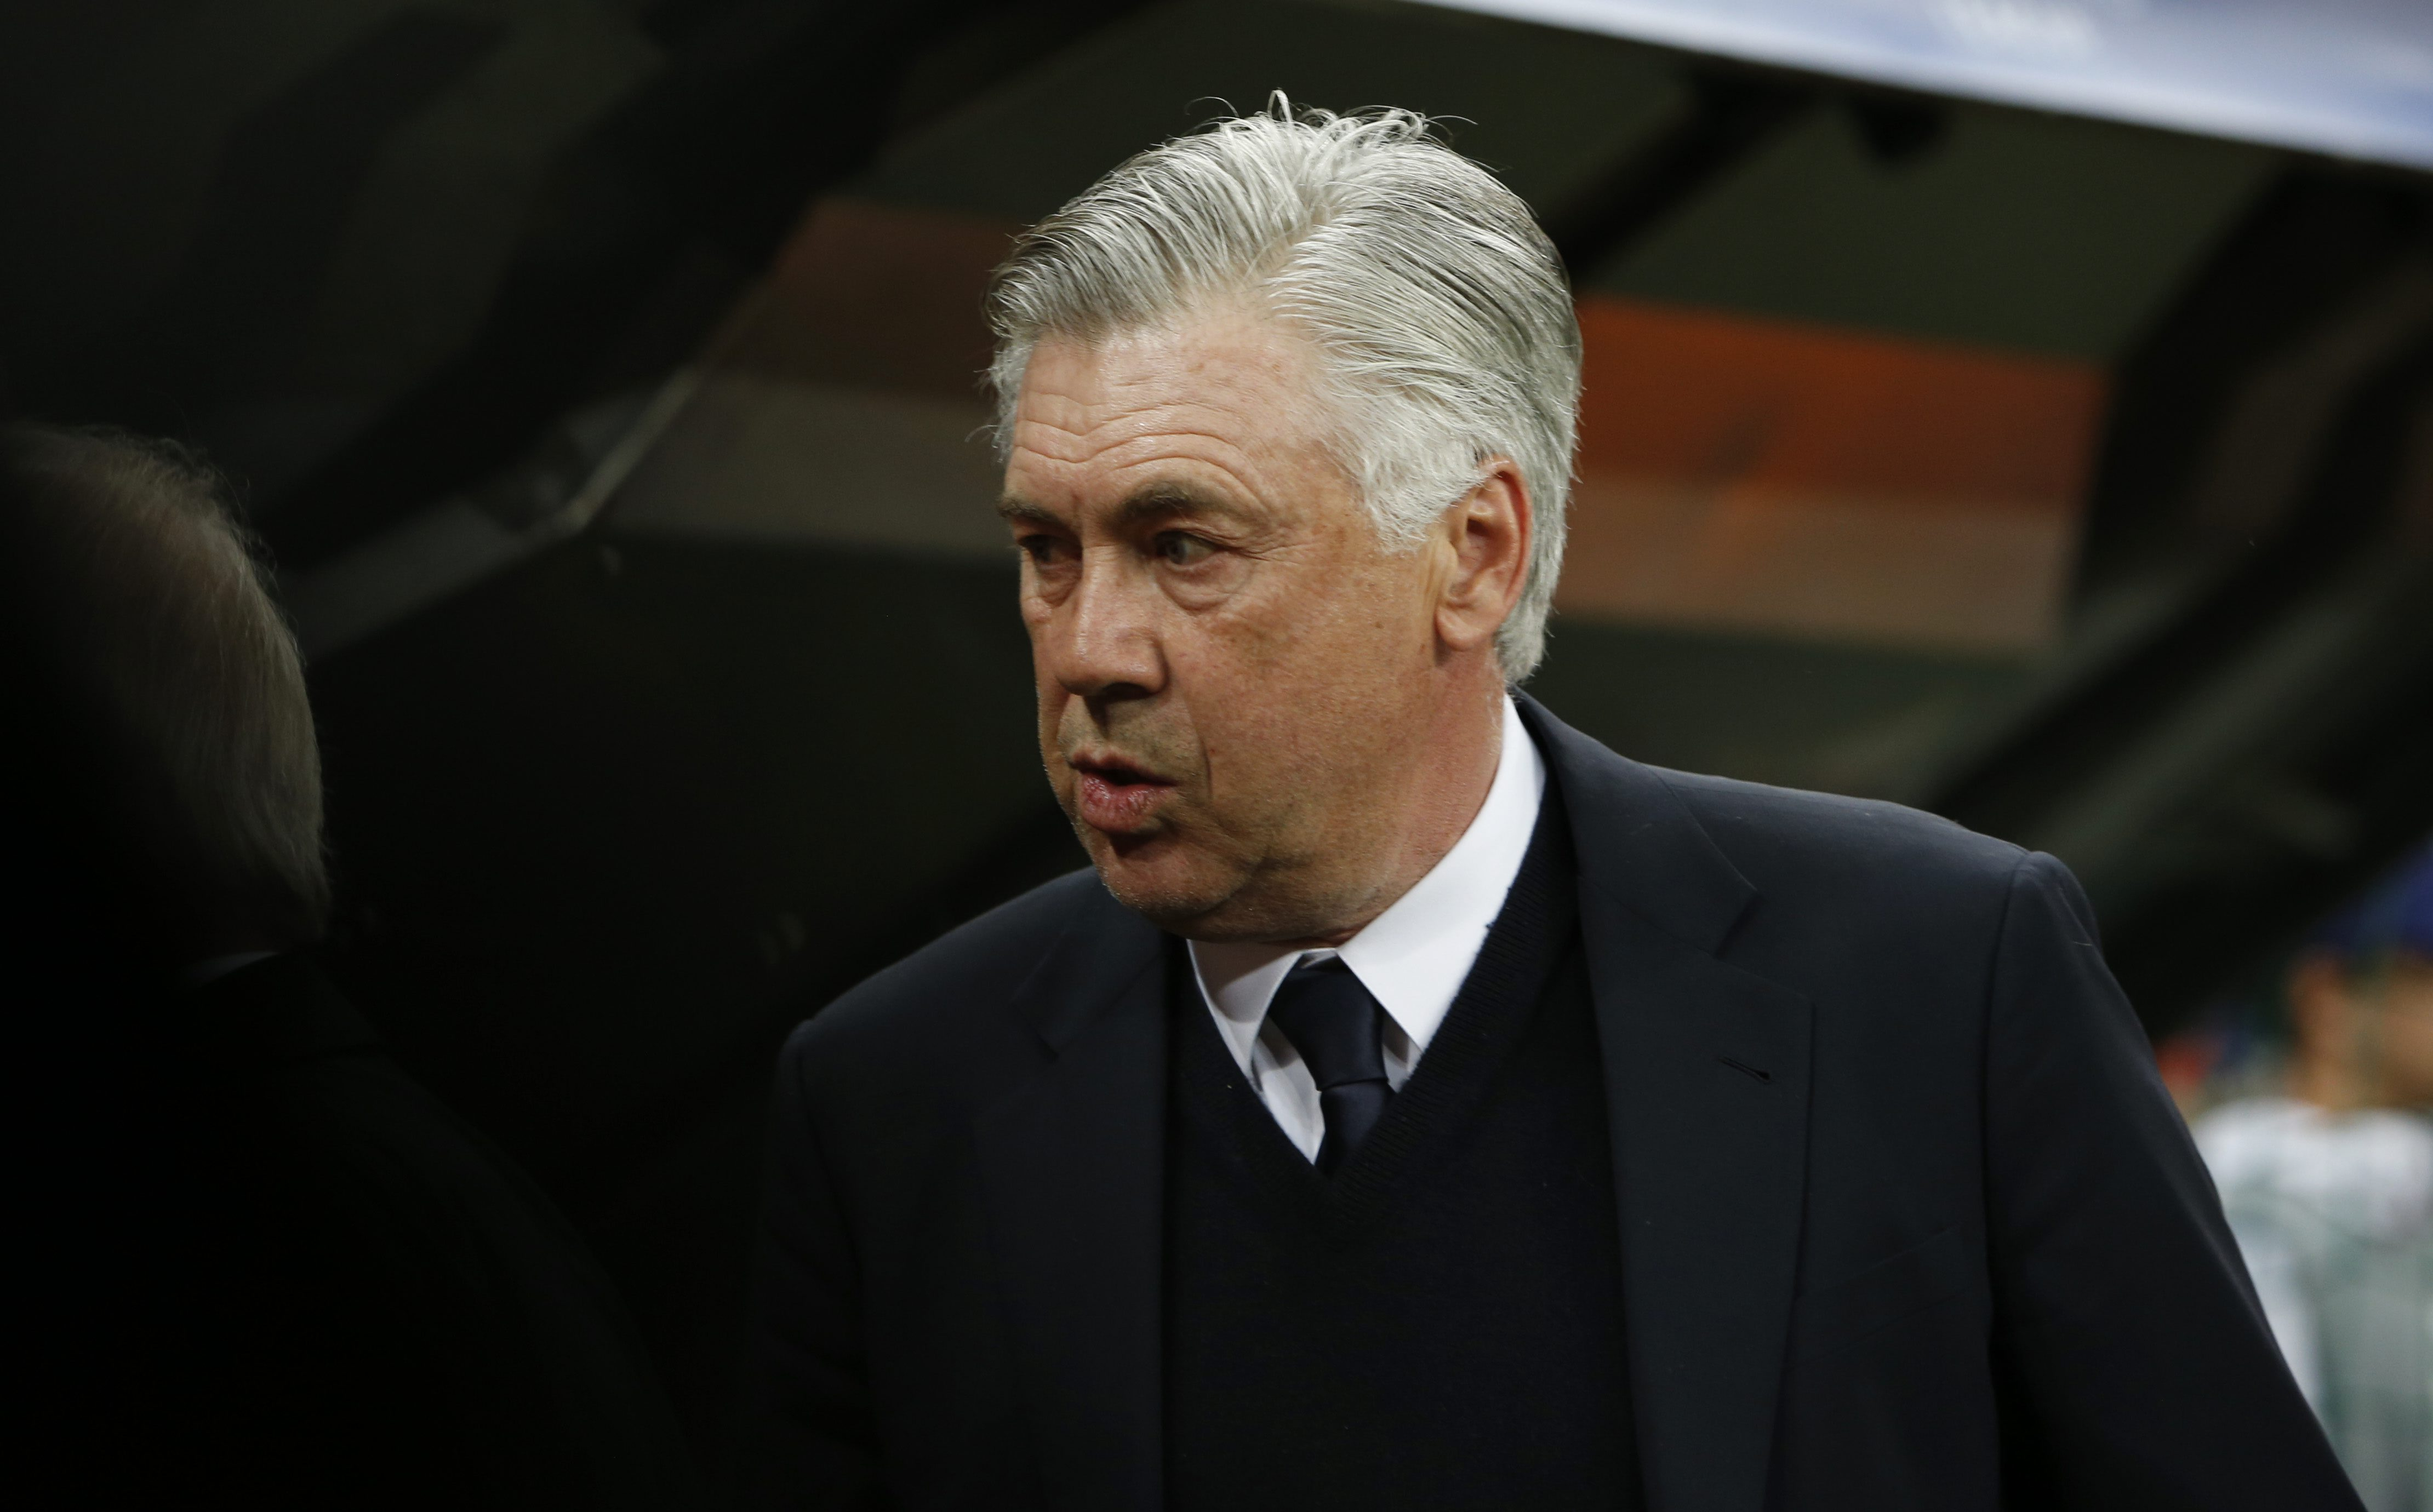 Football Soccer - Bayern Munich v Real Madrid - UEFA Champions League Quarter Final First Leg - Allianz Arena, Munich, Germany - 12/4/17 Bayern Munich coach Carlo Ancelotti  before the match Reuters / Michaela Rehle Livepic